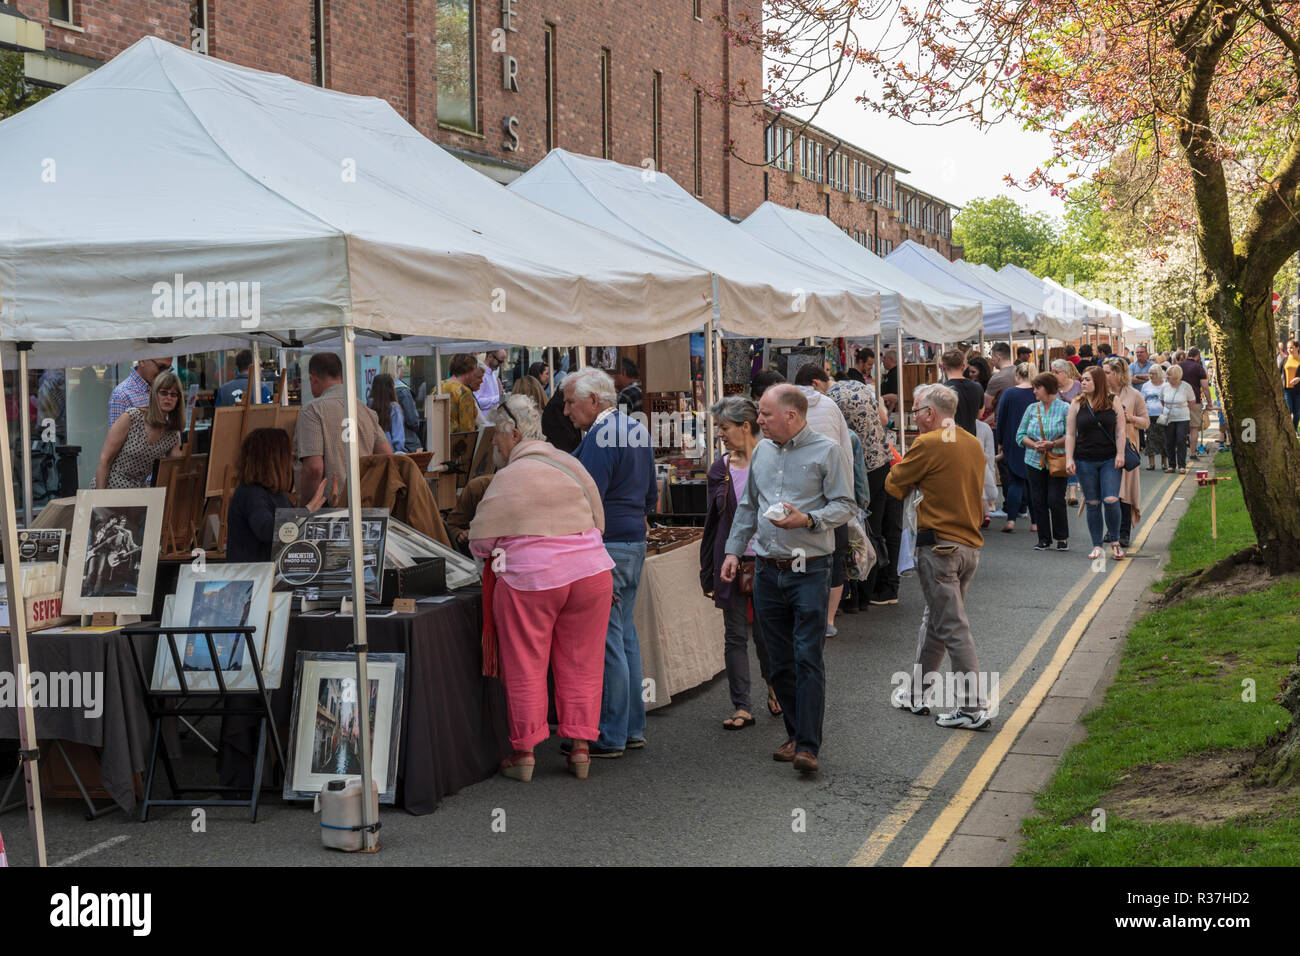 Shoppers visiting the outdoor artisan market in Wilmslow Cheshire,  The market takes place in the town centre.  A sunny spring day - Stock Image